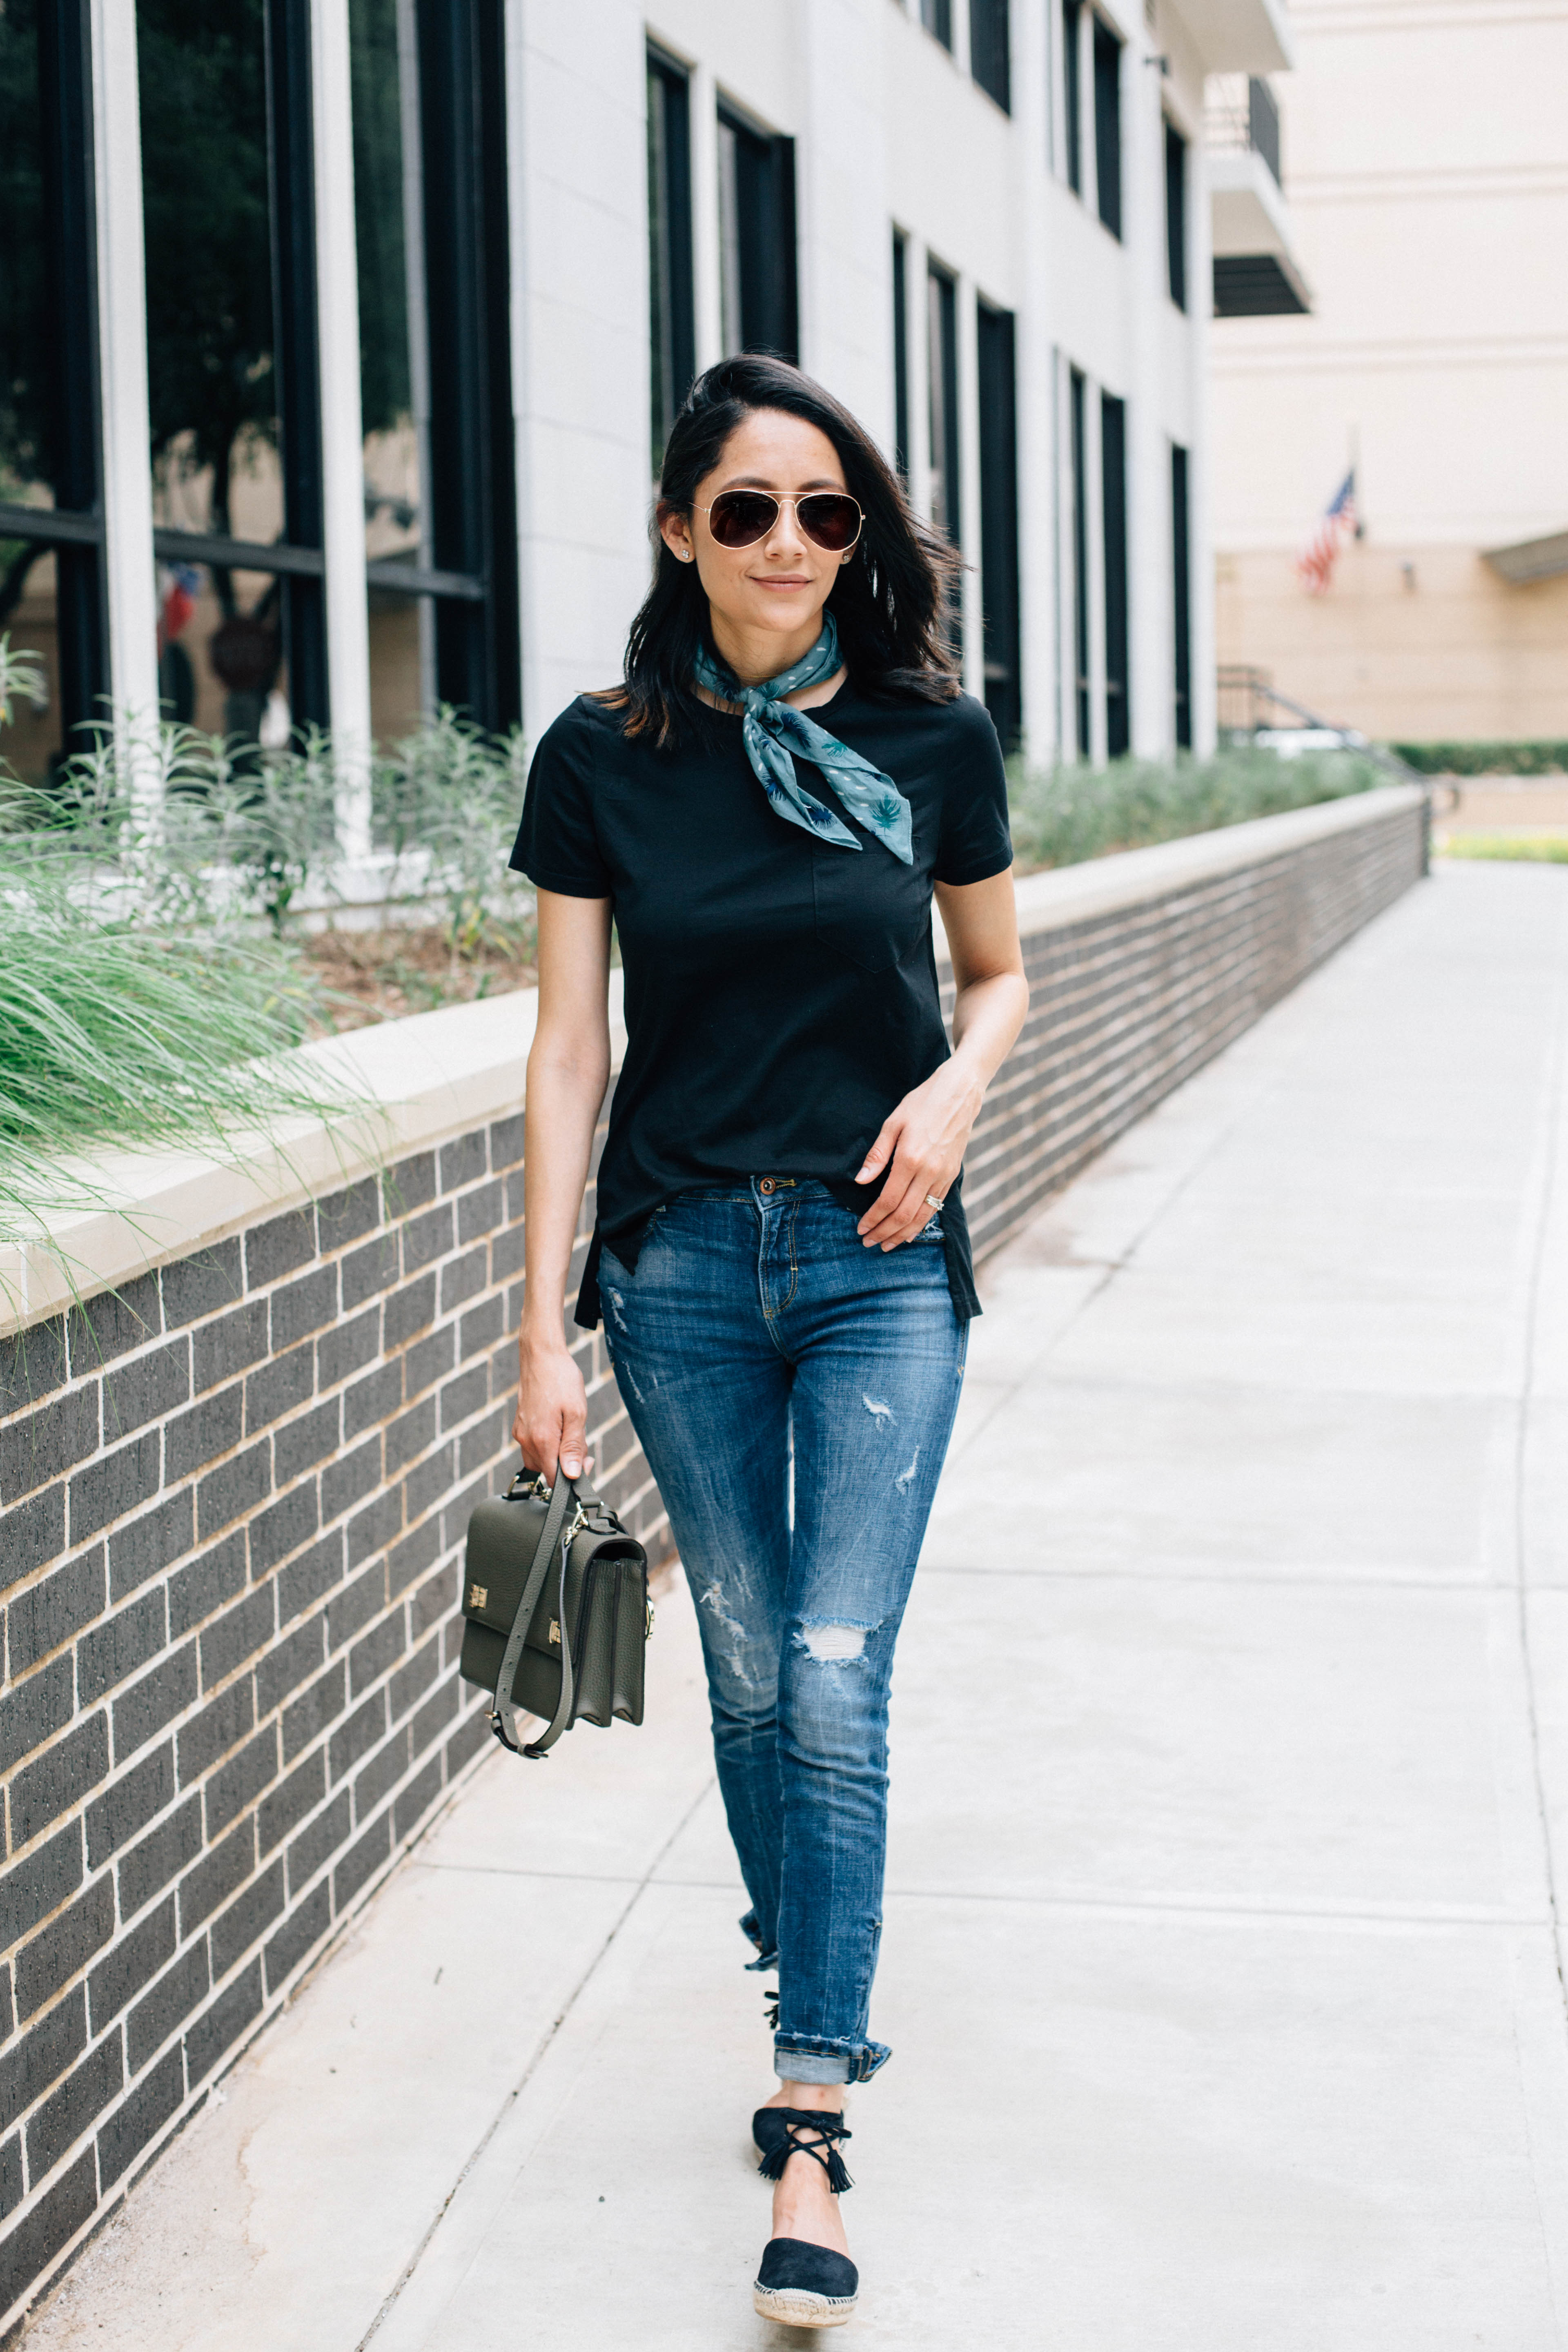 Daily Craving weekend style. Black tee, skinny jeans, lace up espadrilles and neck bandana